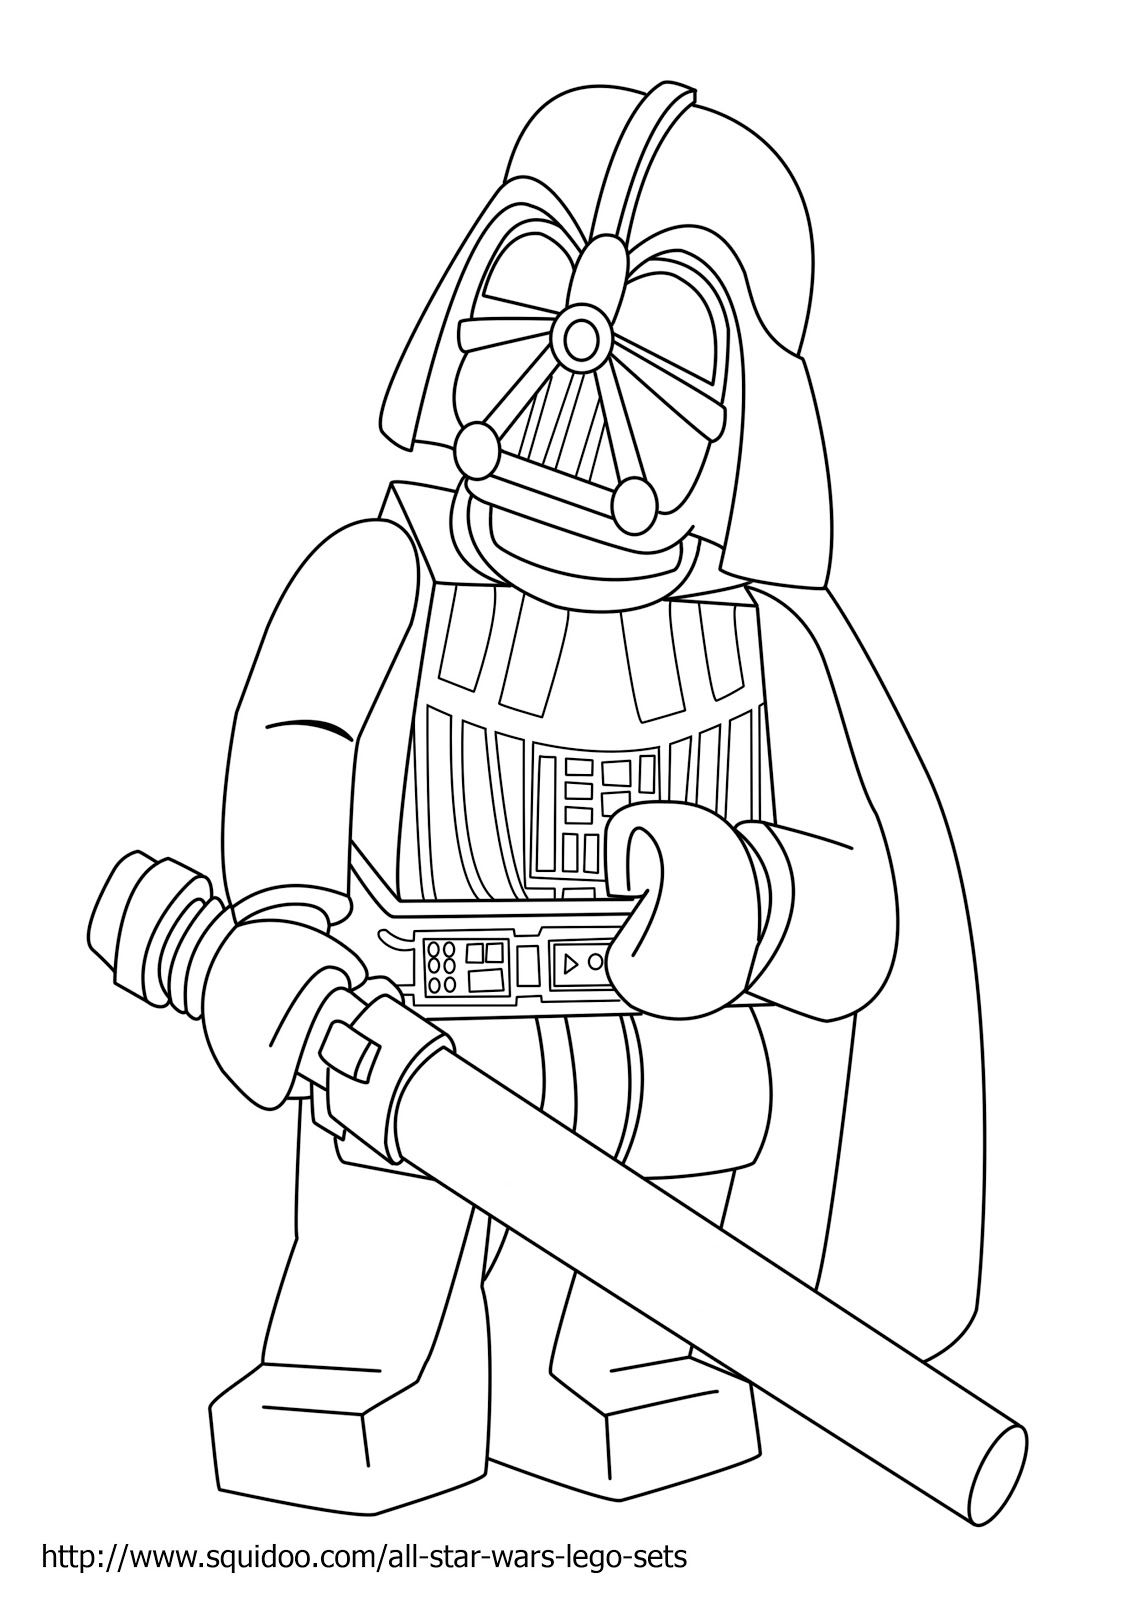 dragon ball z 3 coloring pages lego star wars coloring pages1